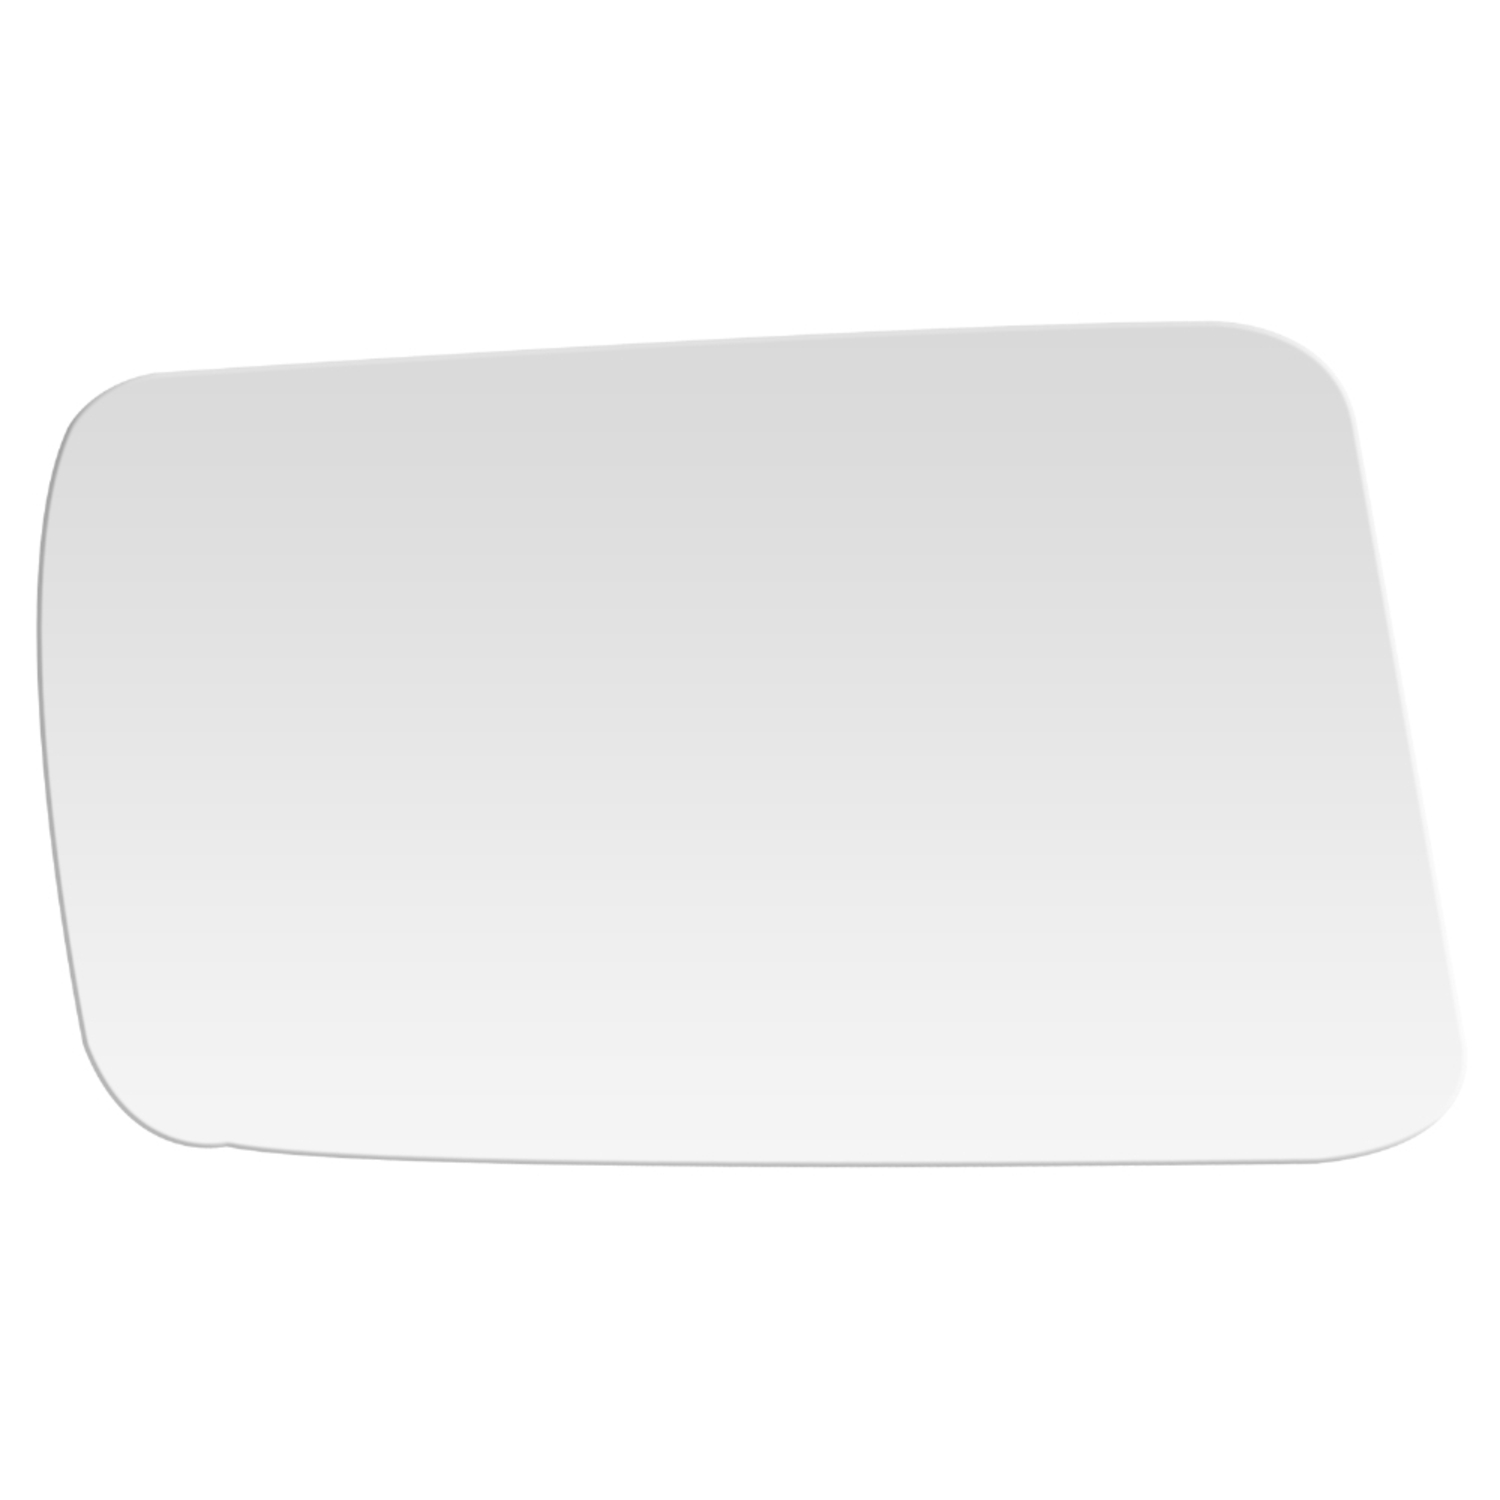 Driver Side Power Non-Heated Replacement Mirror MI-2194